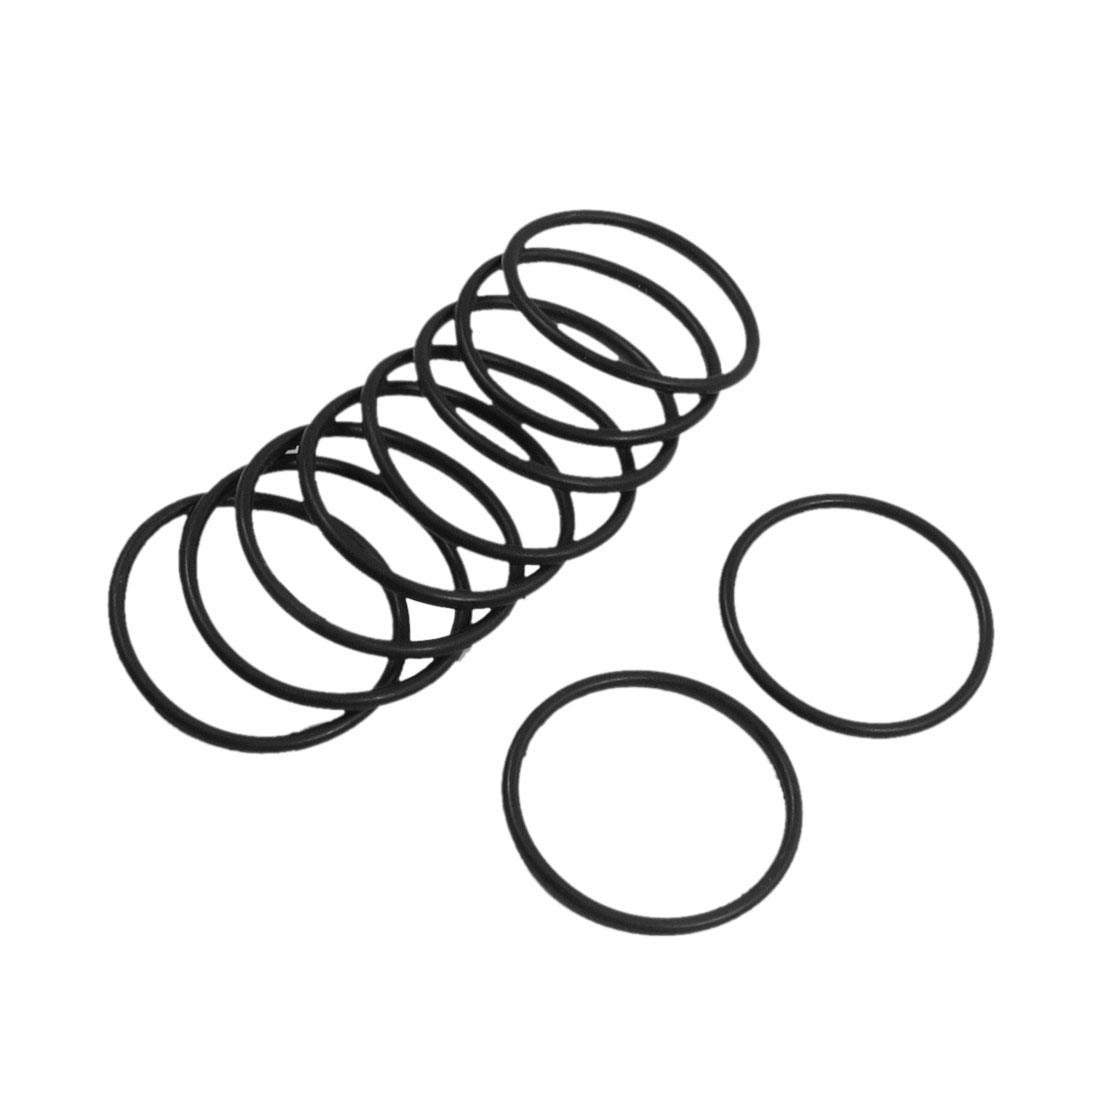 10 Pcs 30mm x 2mm Rubber Sealing Washers Oil Filter O Rings Black